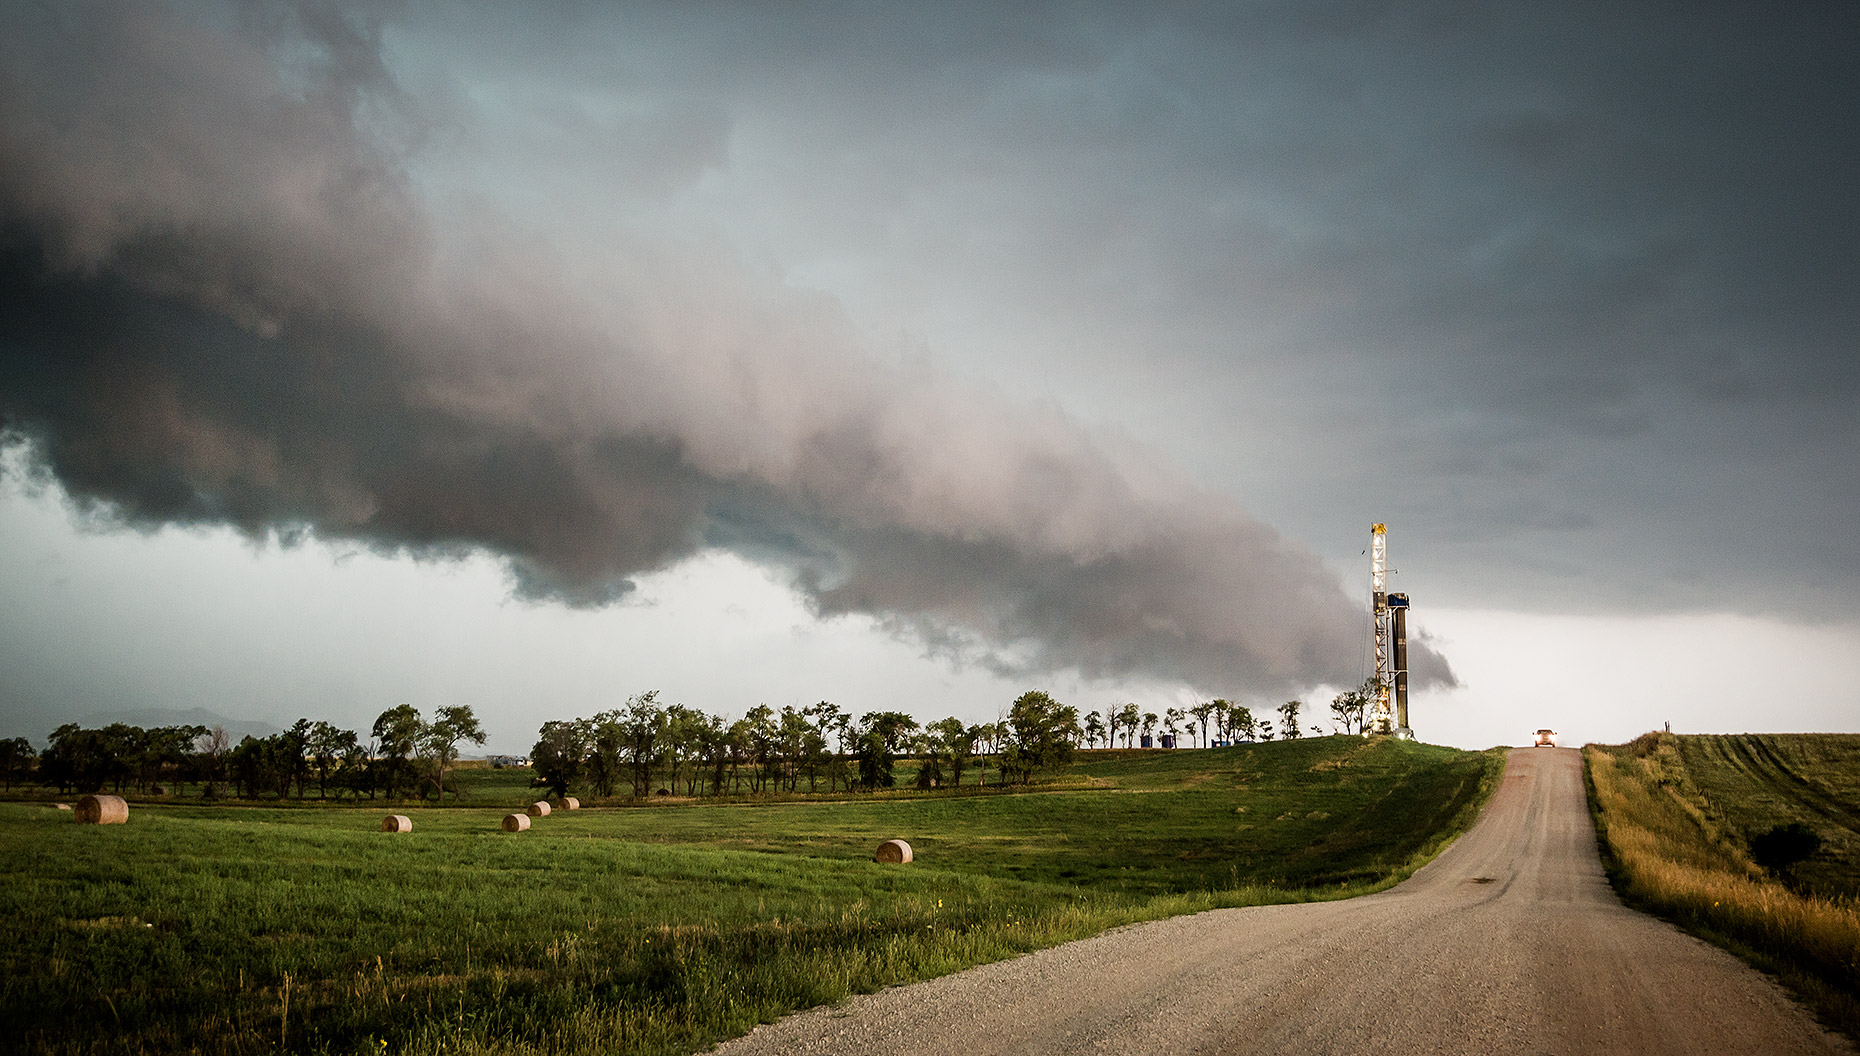 Oil Drilling Rig and Thunderstorm